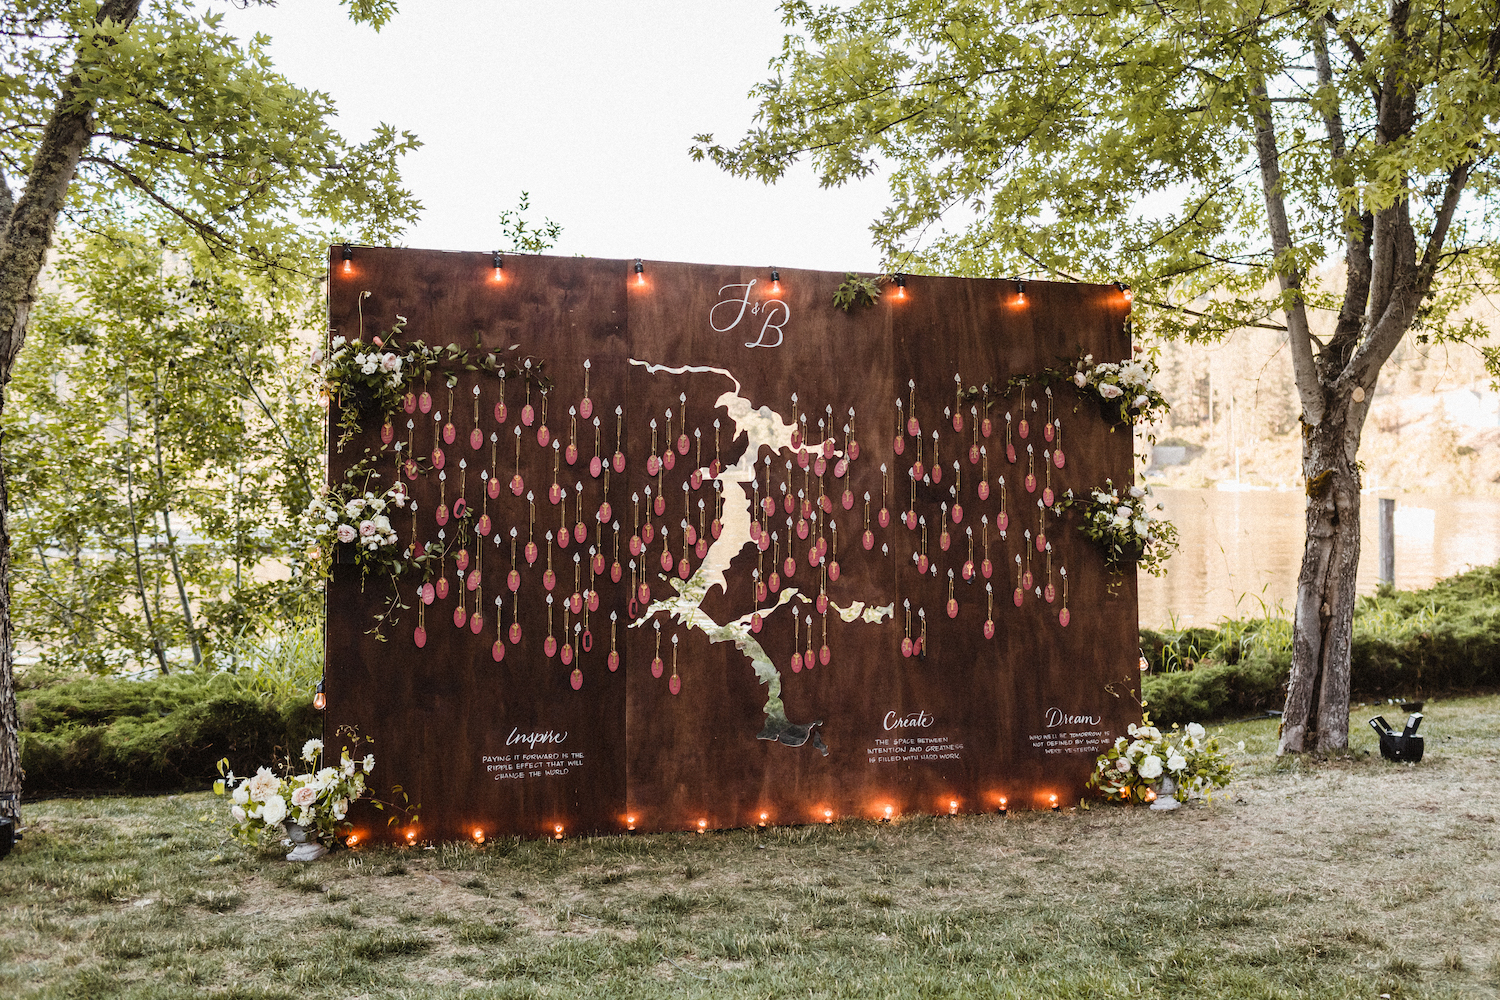 Julianne Hough and Brooks Laich Wedding - Wild Bloom Floral - Sarah Falugo Photography - Simply Troy Event Design 44.jpeg